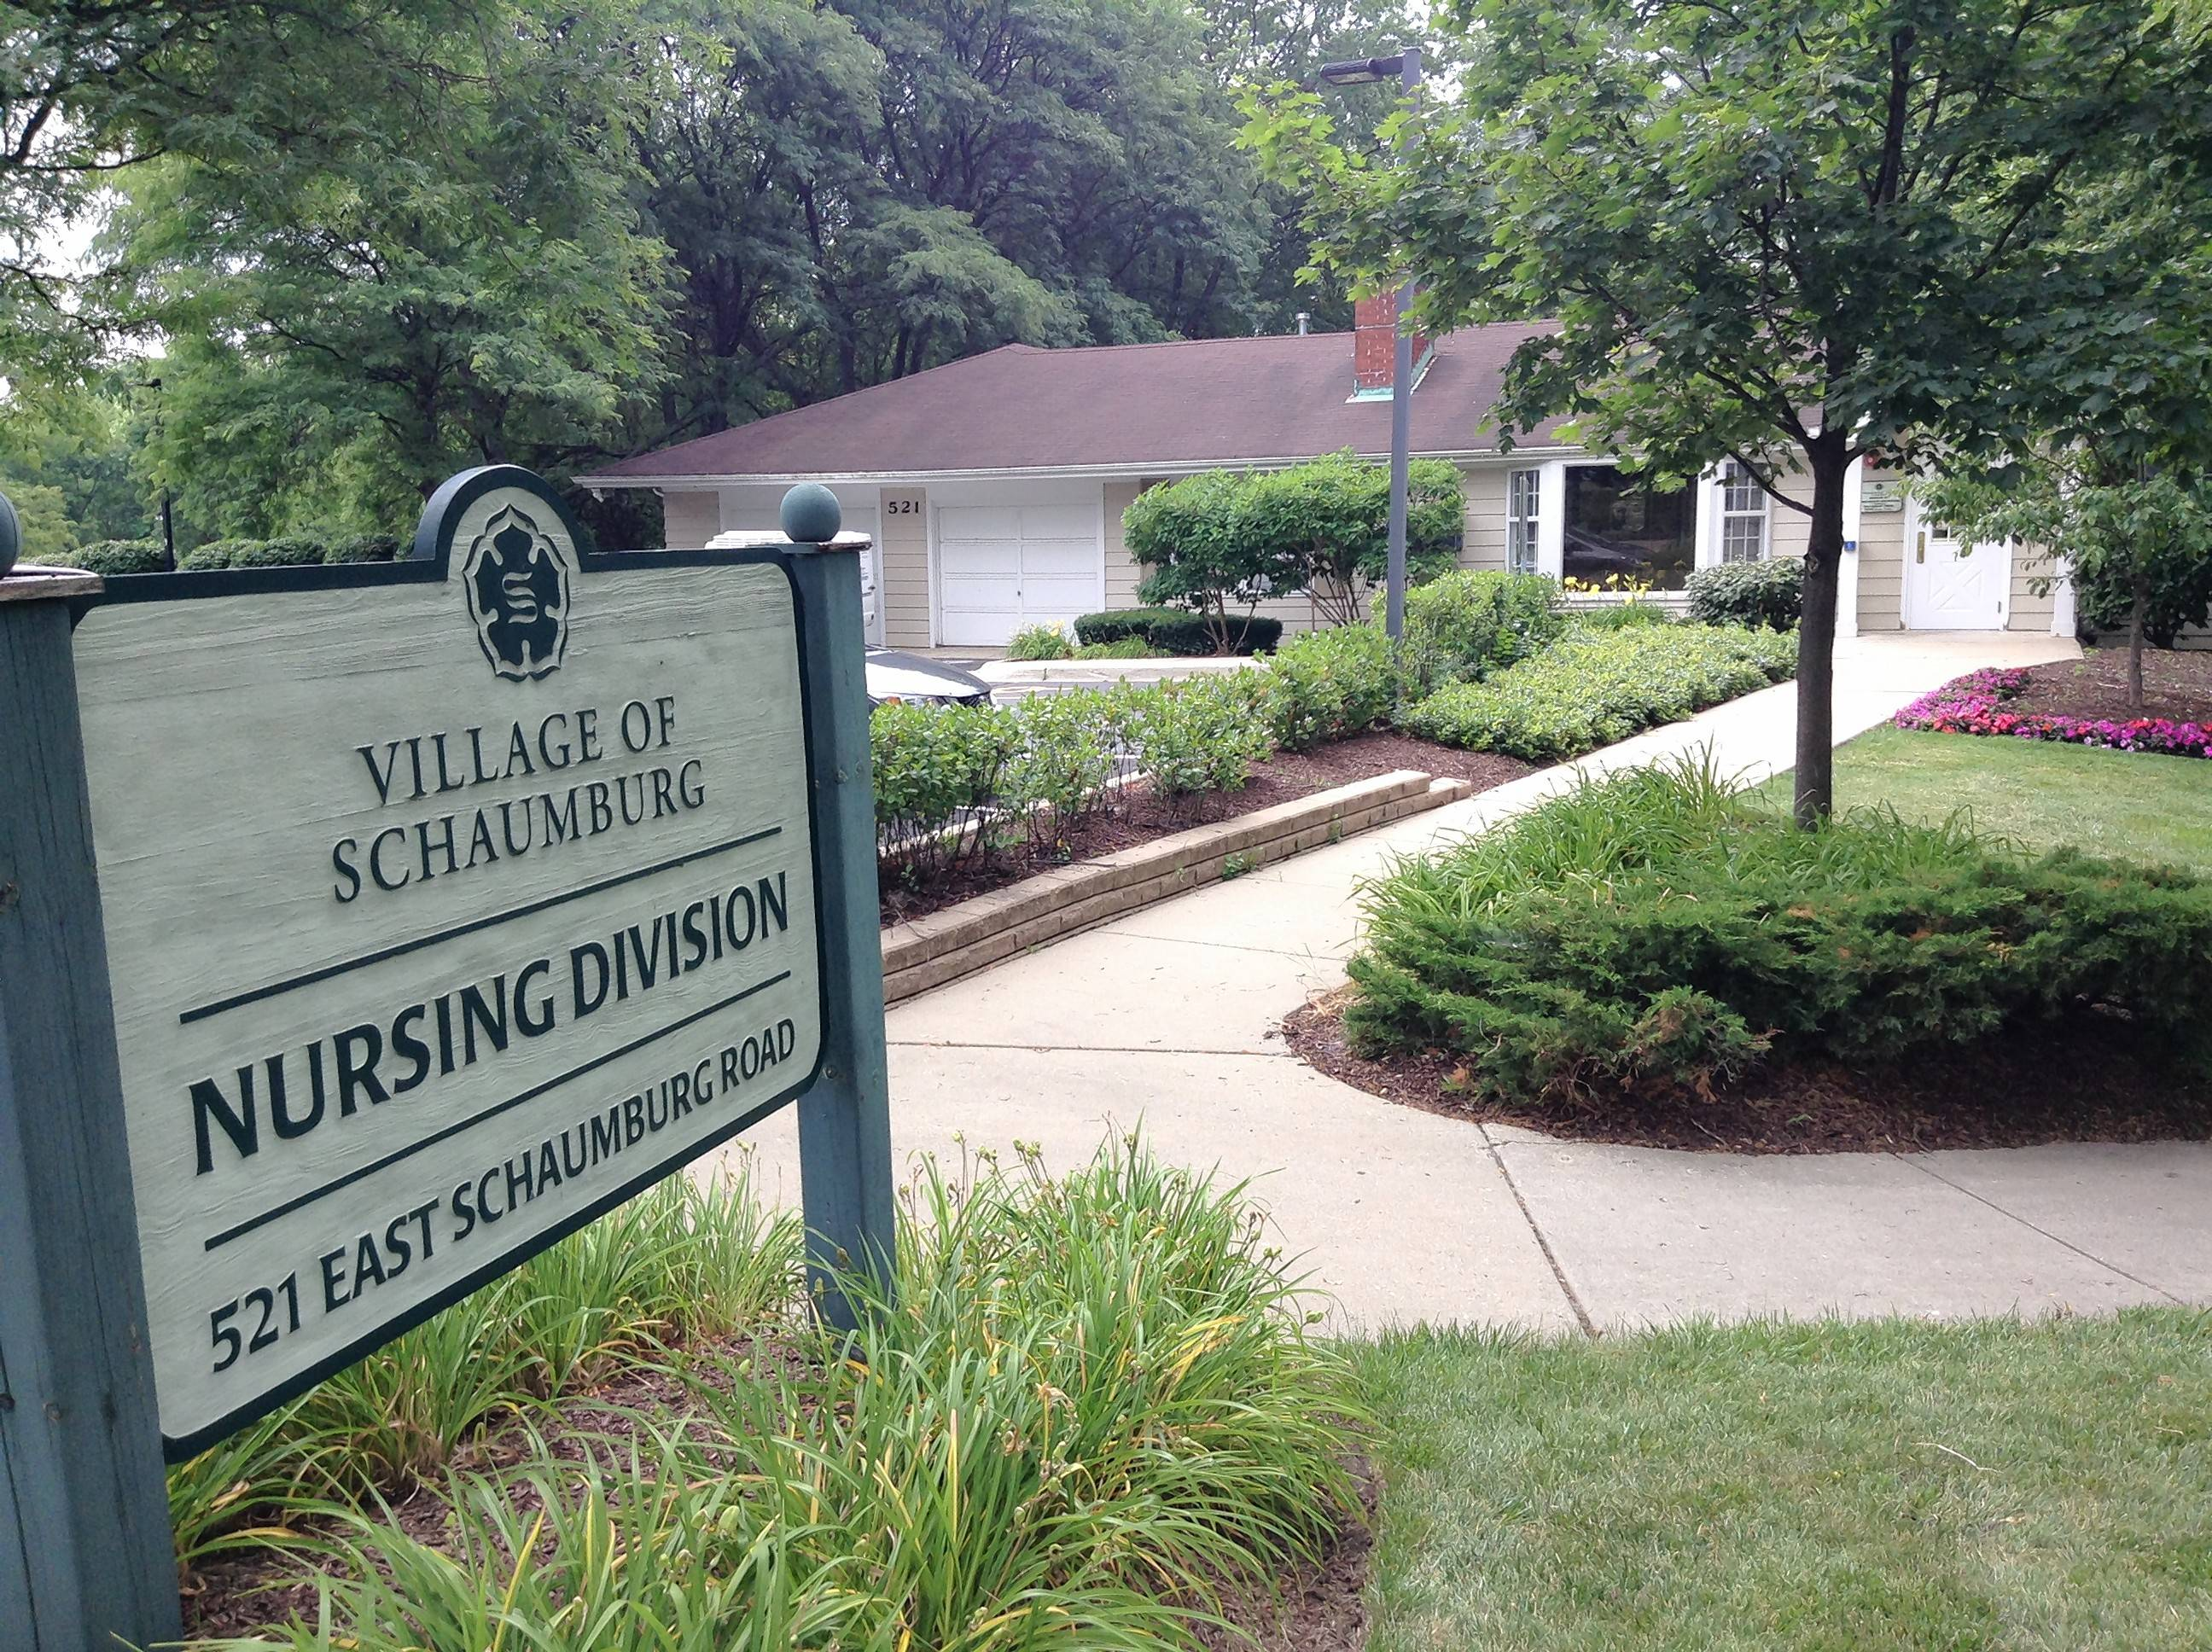 Schaumburg trustees favor moving nursing division